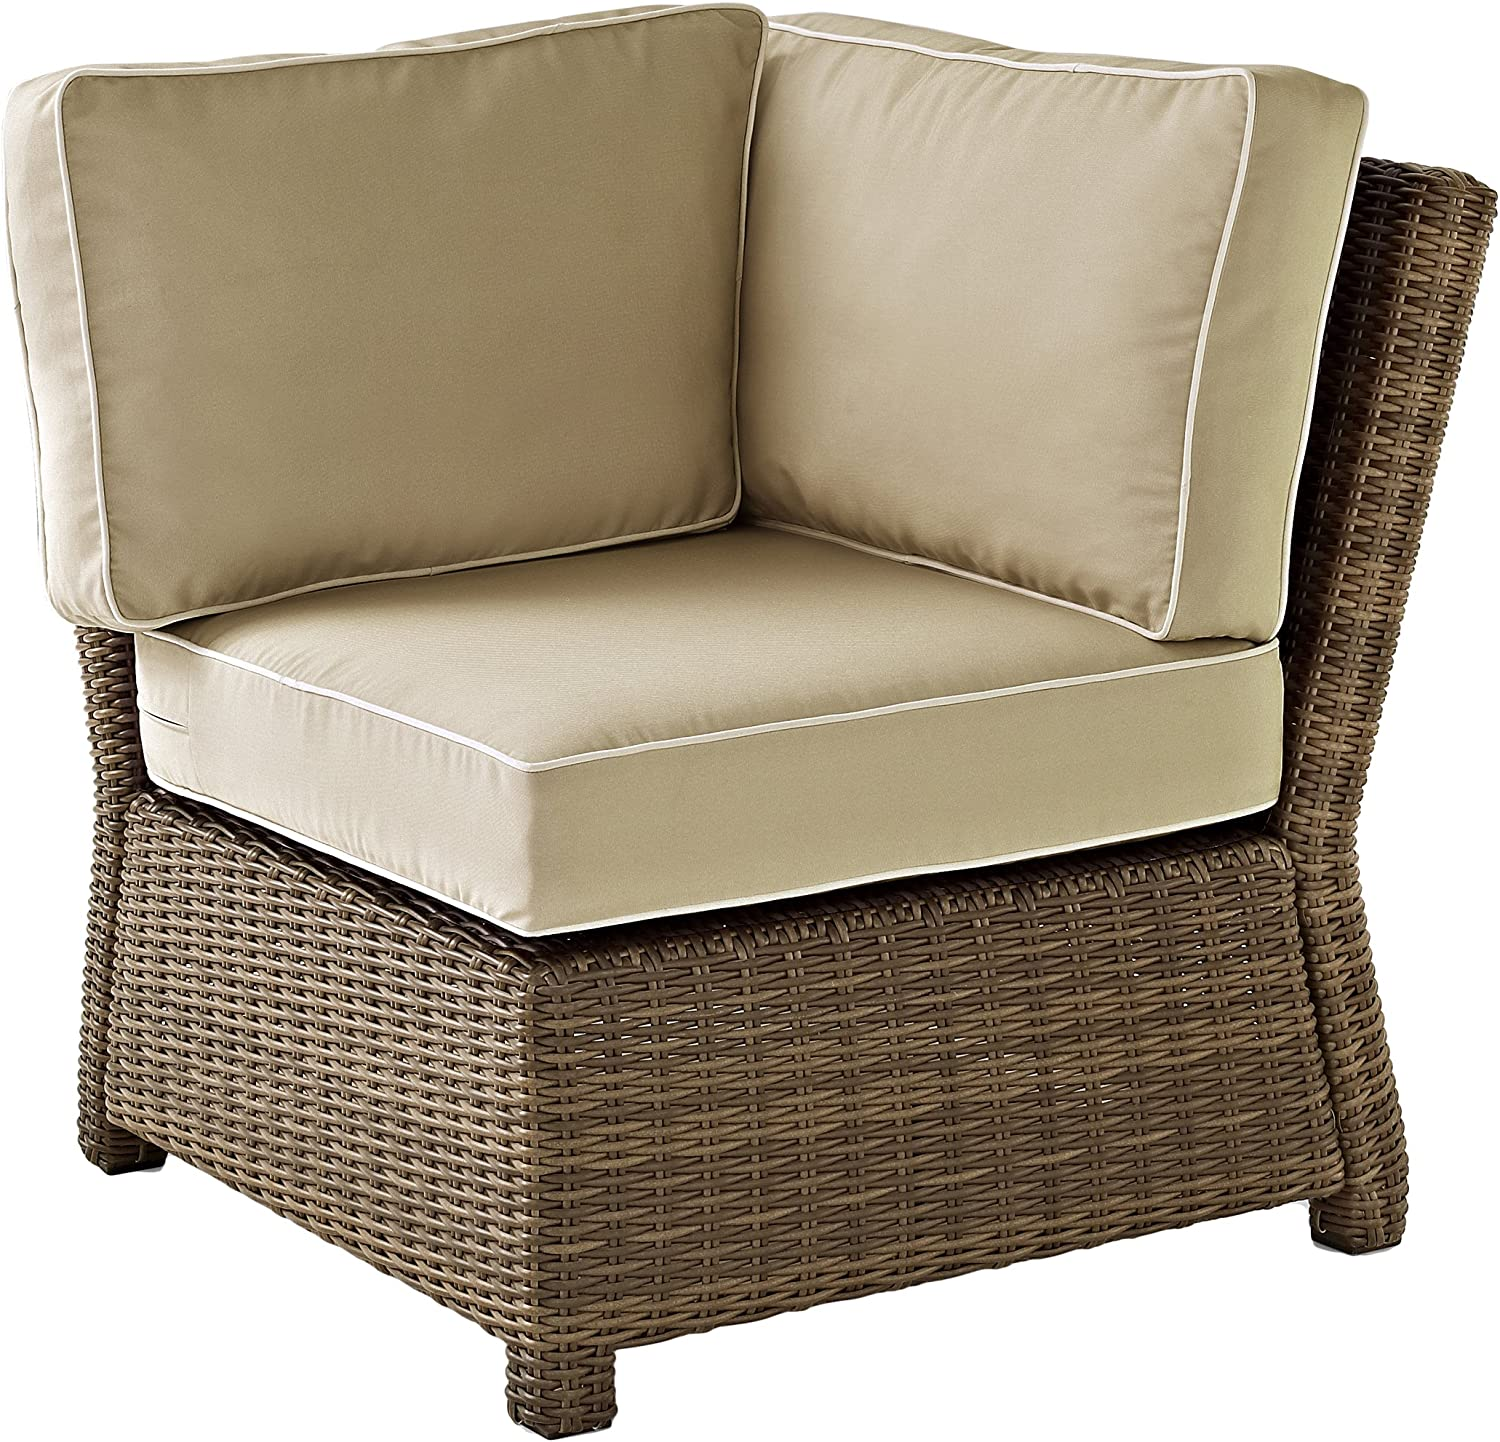 Crosley Furniture KO70018WB-SA Bradenton Outdoor Wicker Sectional Corner Chair, Brown with Sand Cushions